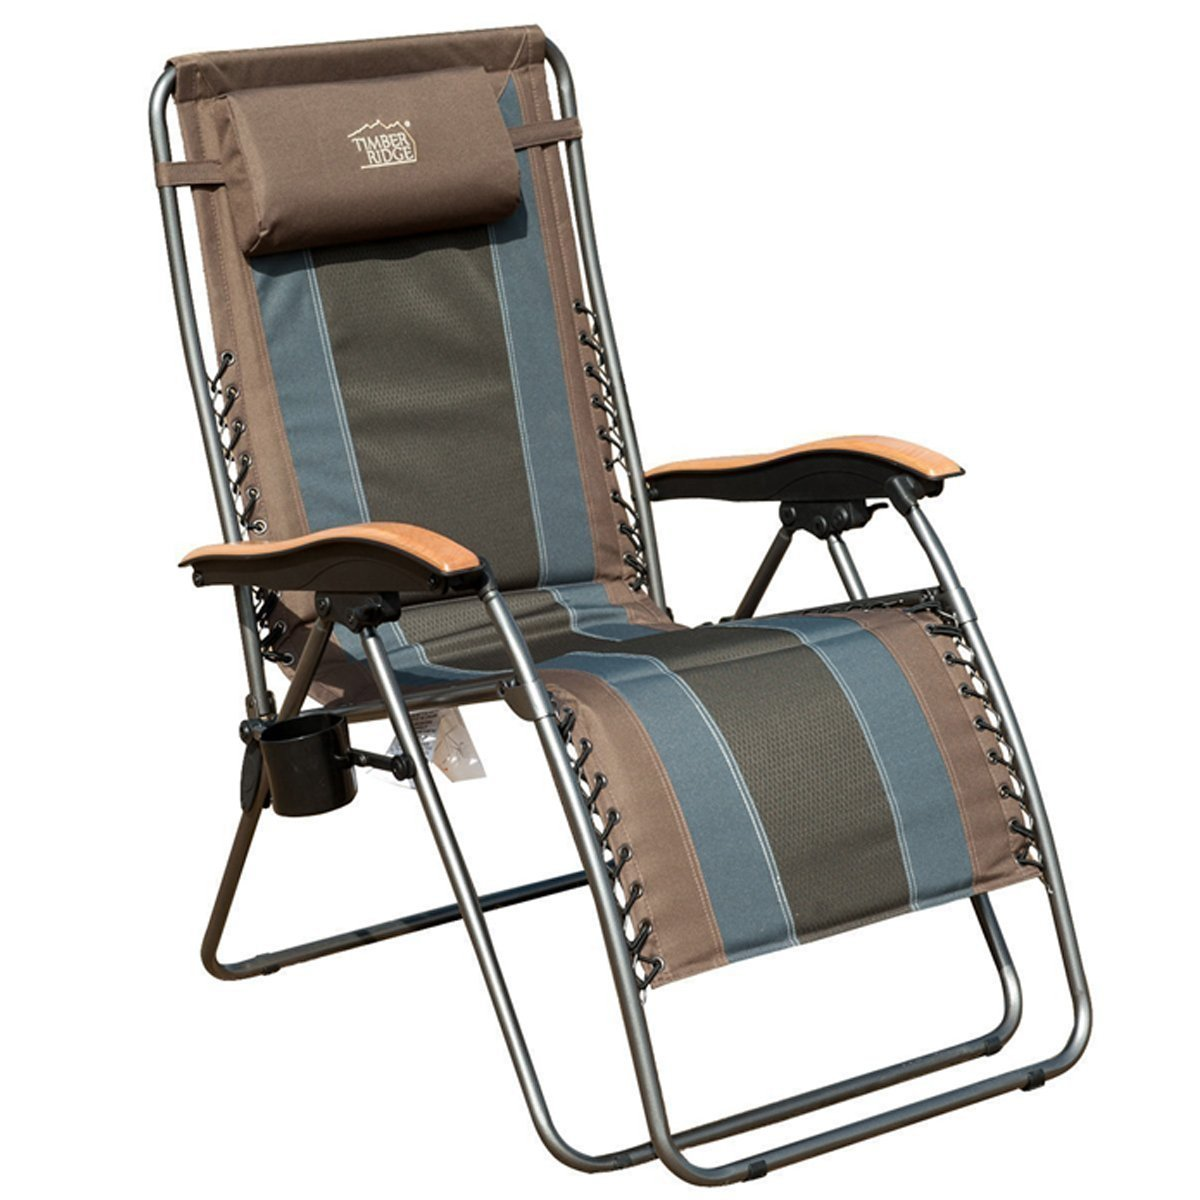 xl zero gravity chair with canopy and footrest office next review of timber ridge patio lounge oversize padded adjustable recliner